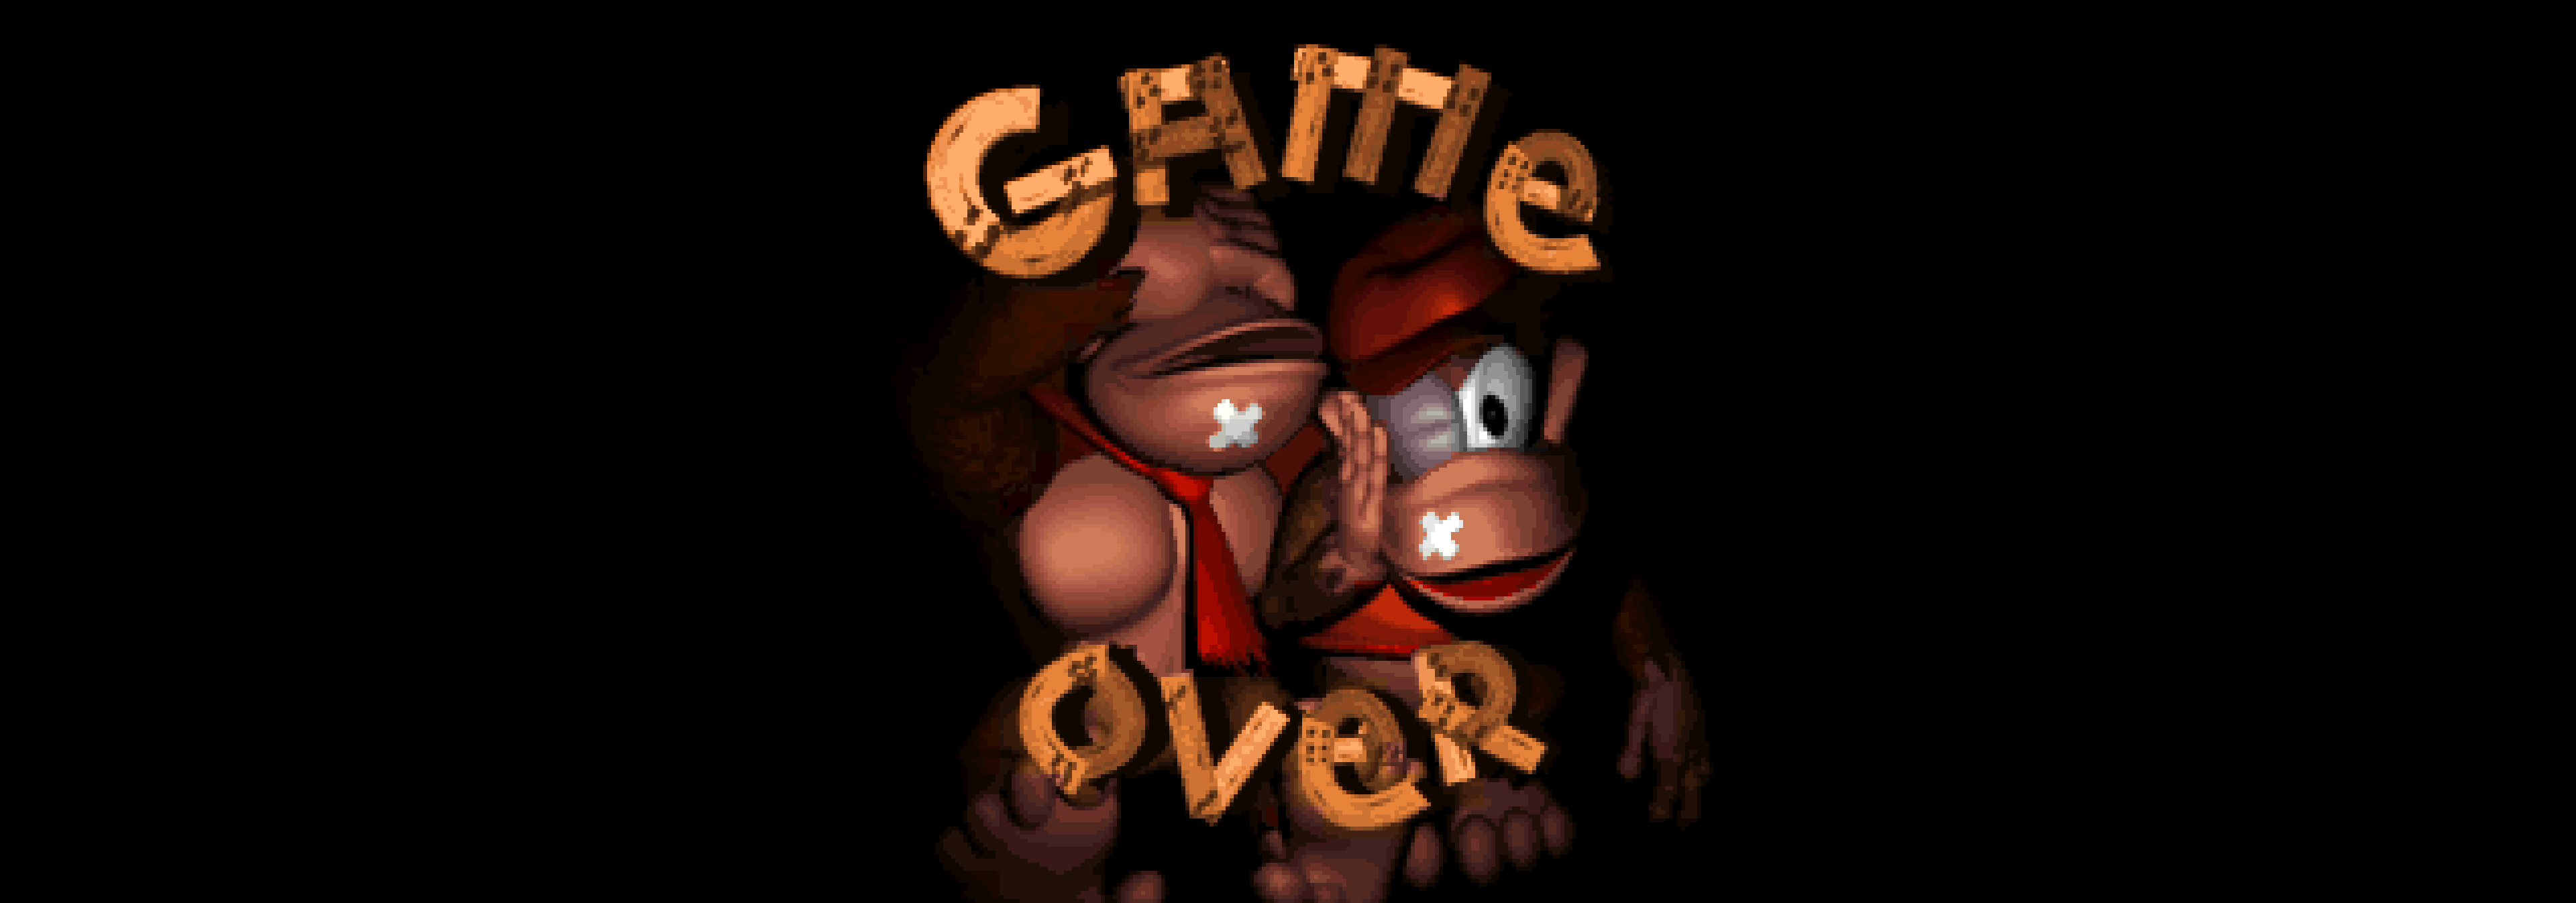 Game over in Donkey Kong Country.